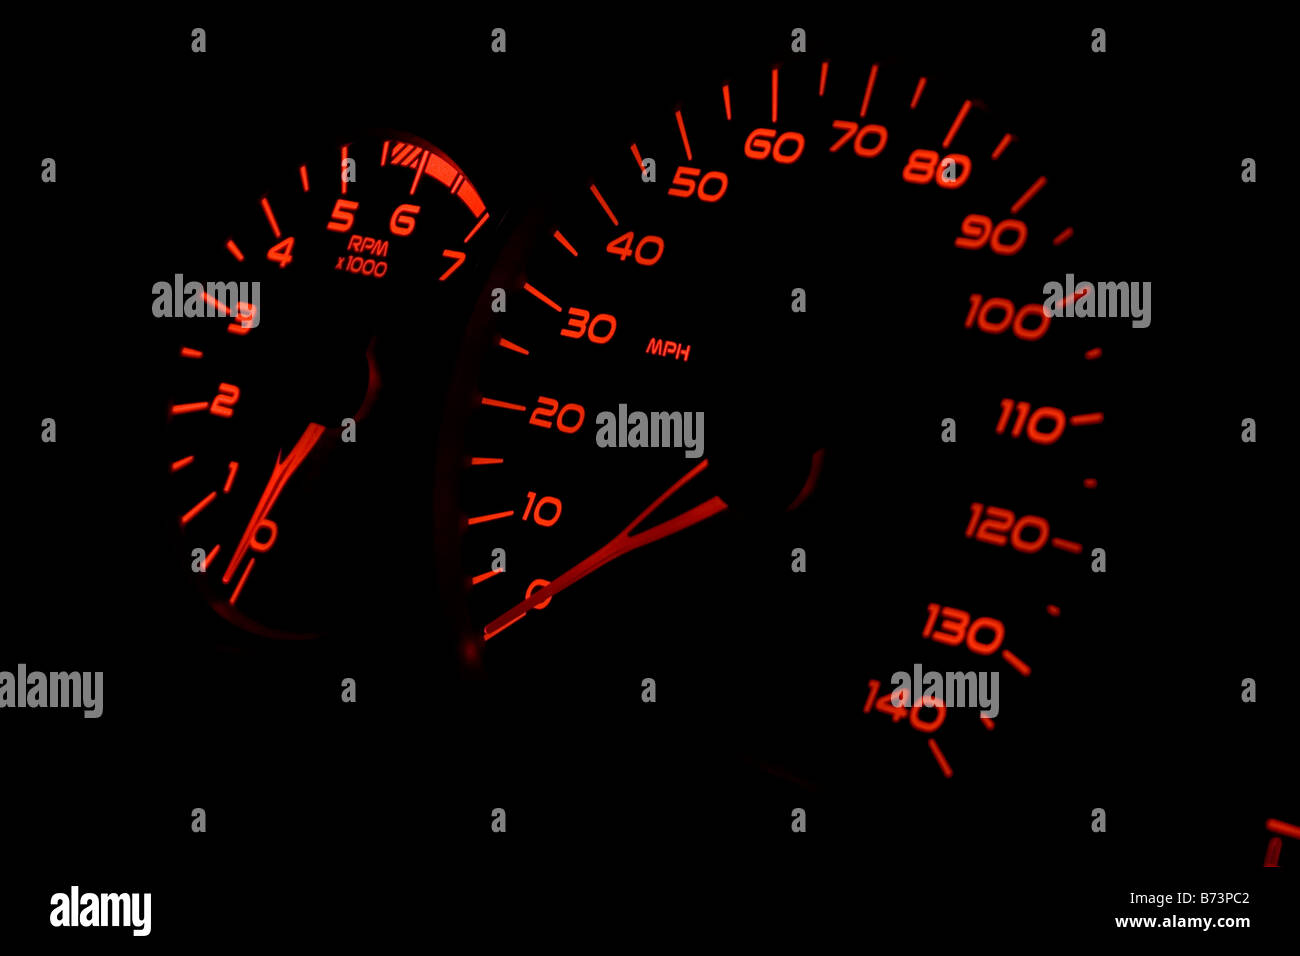 Speedometer and tachometer gauges from a car. Taken at 0 RPM and 0 MPH - Stock Image